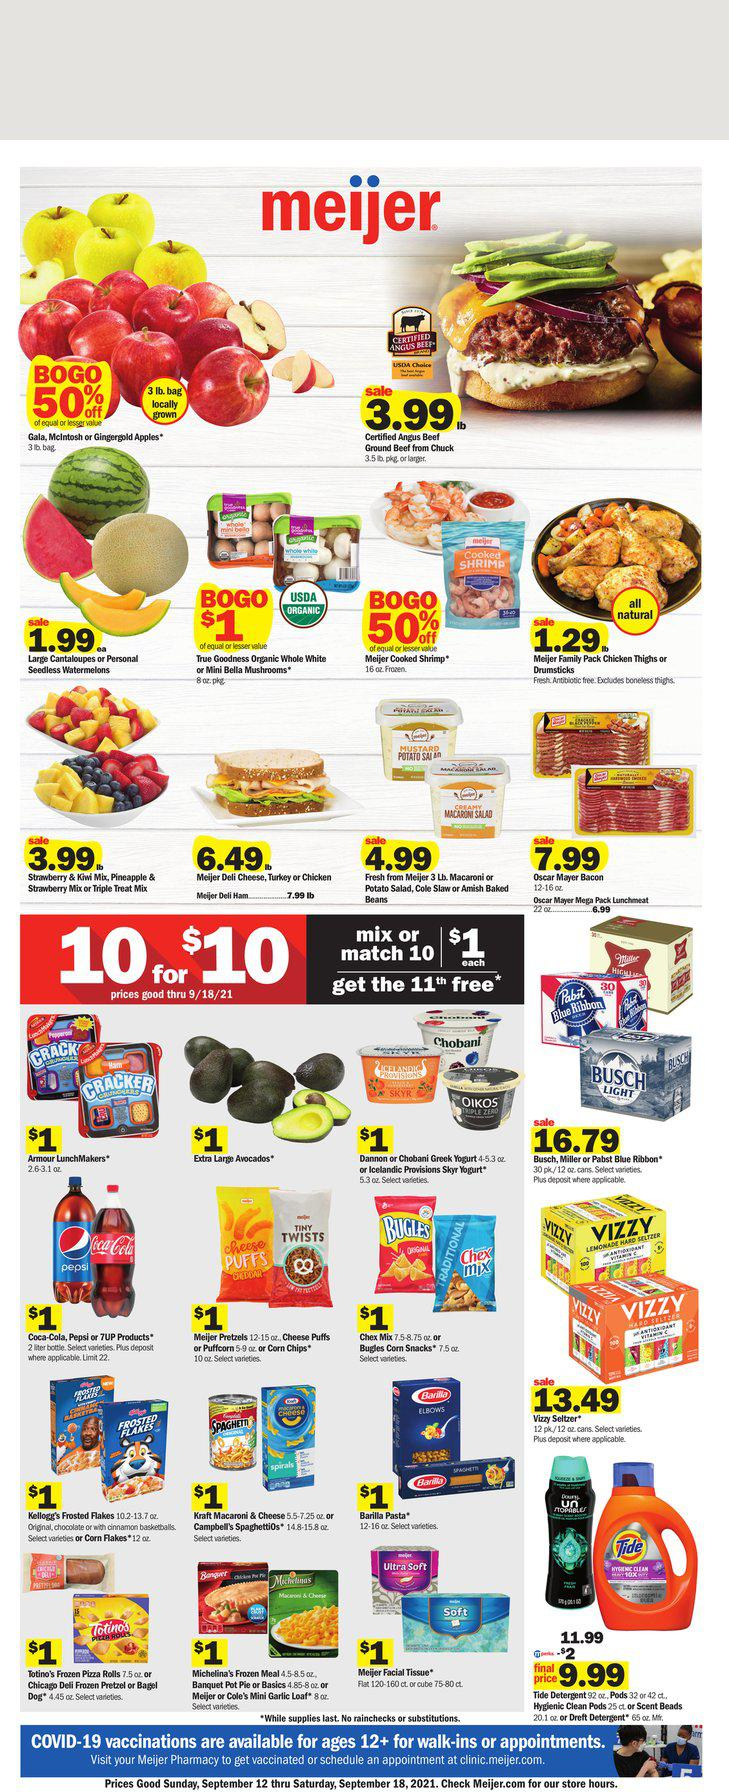 12.09.2021 Meijer ad 1. page